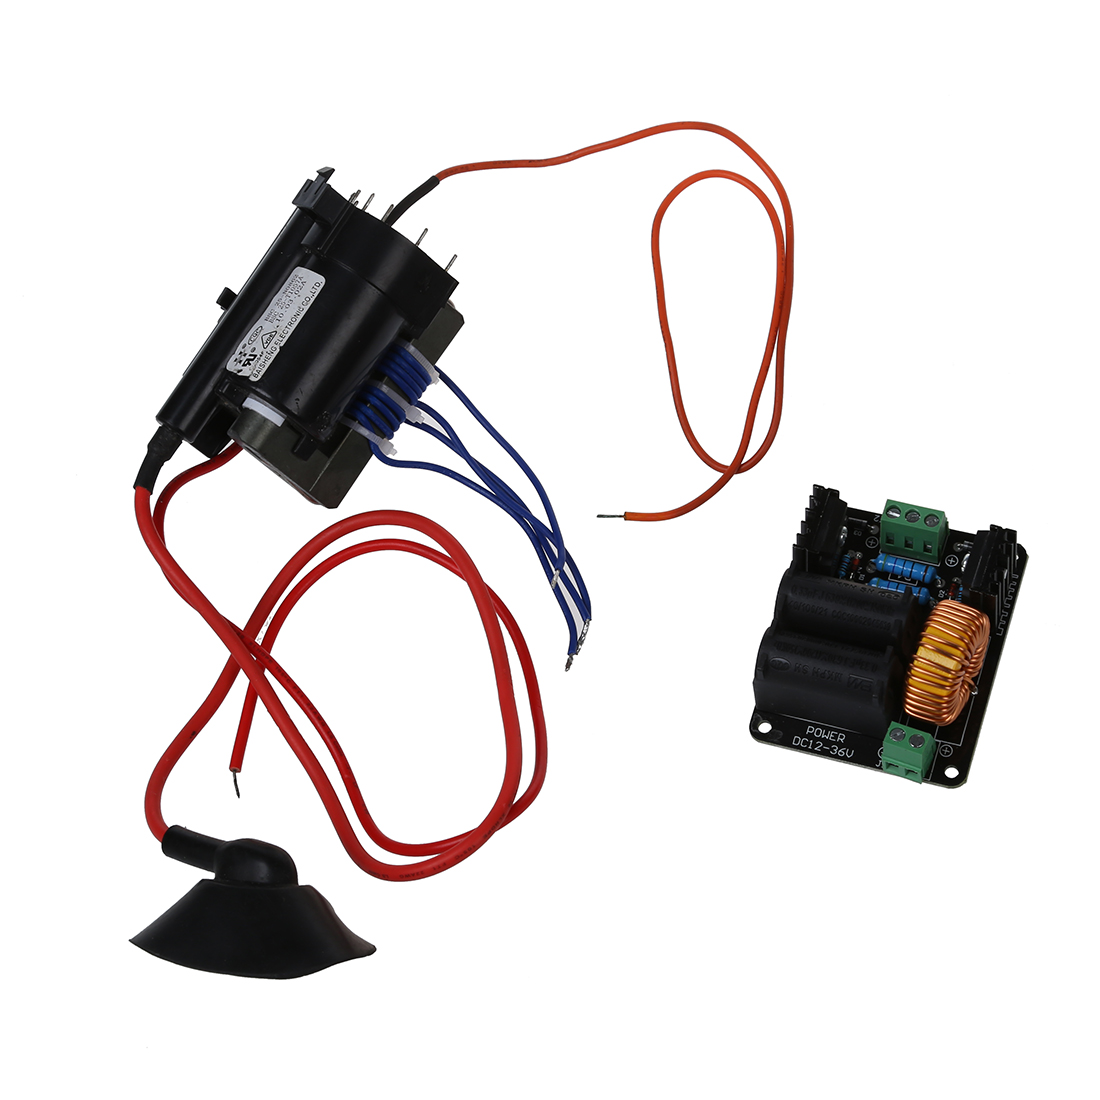 small resolution of 12v 36v zvs tesla coil flyback driver marx generator jacob s ladder ignition coil in signal generators from tools on aliexpress com alibaba group